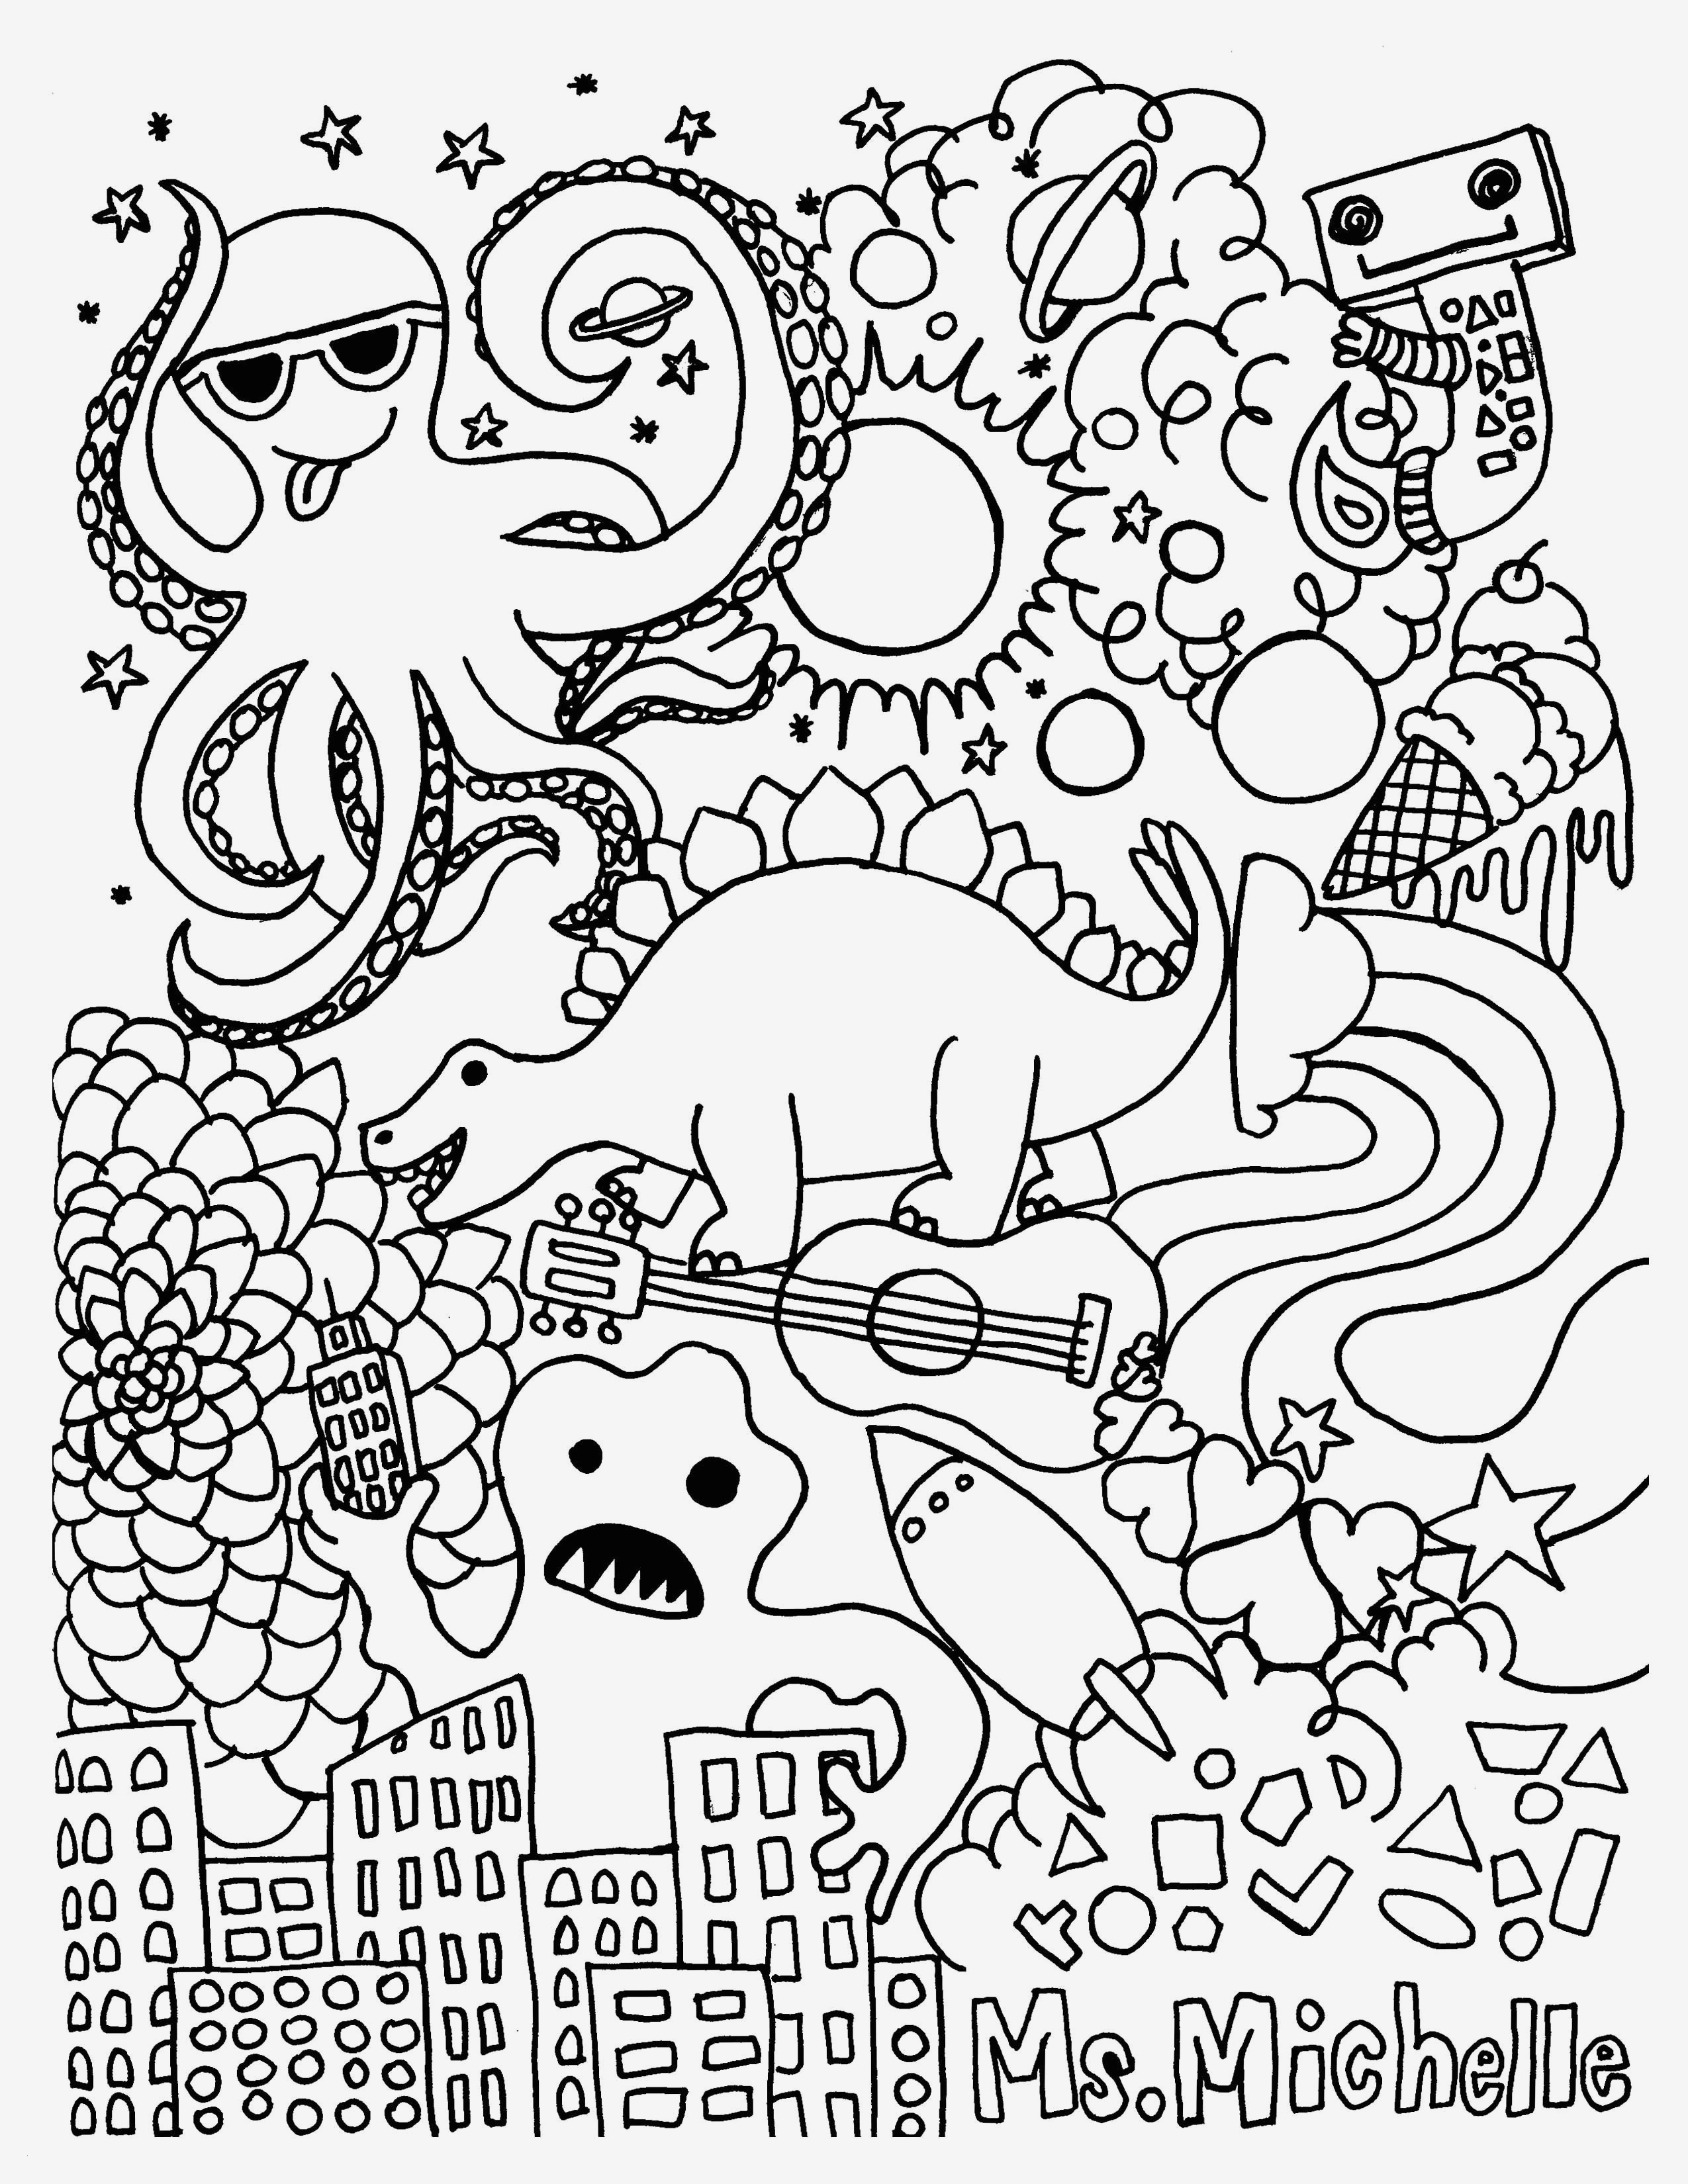 dance coloring pages Download-Sleeping Beauty Coloring Pages the First Ever Custom Lovely Dance Coloring Pages Letramac 18-m